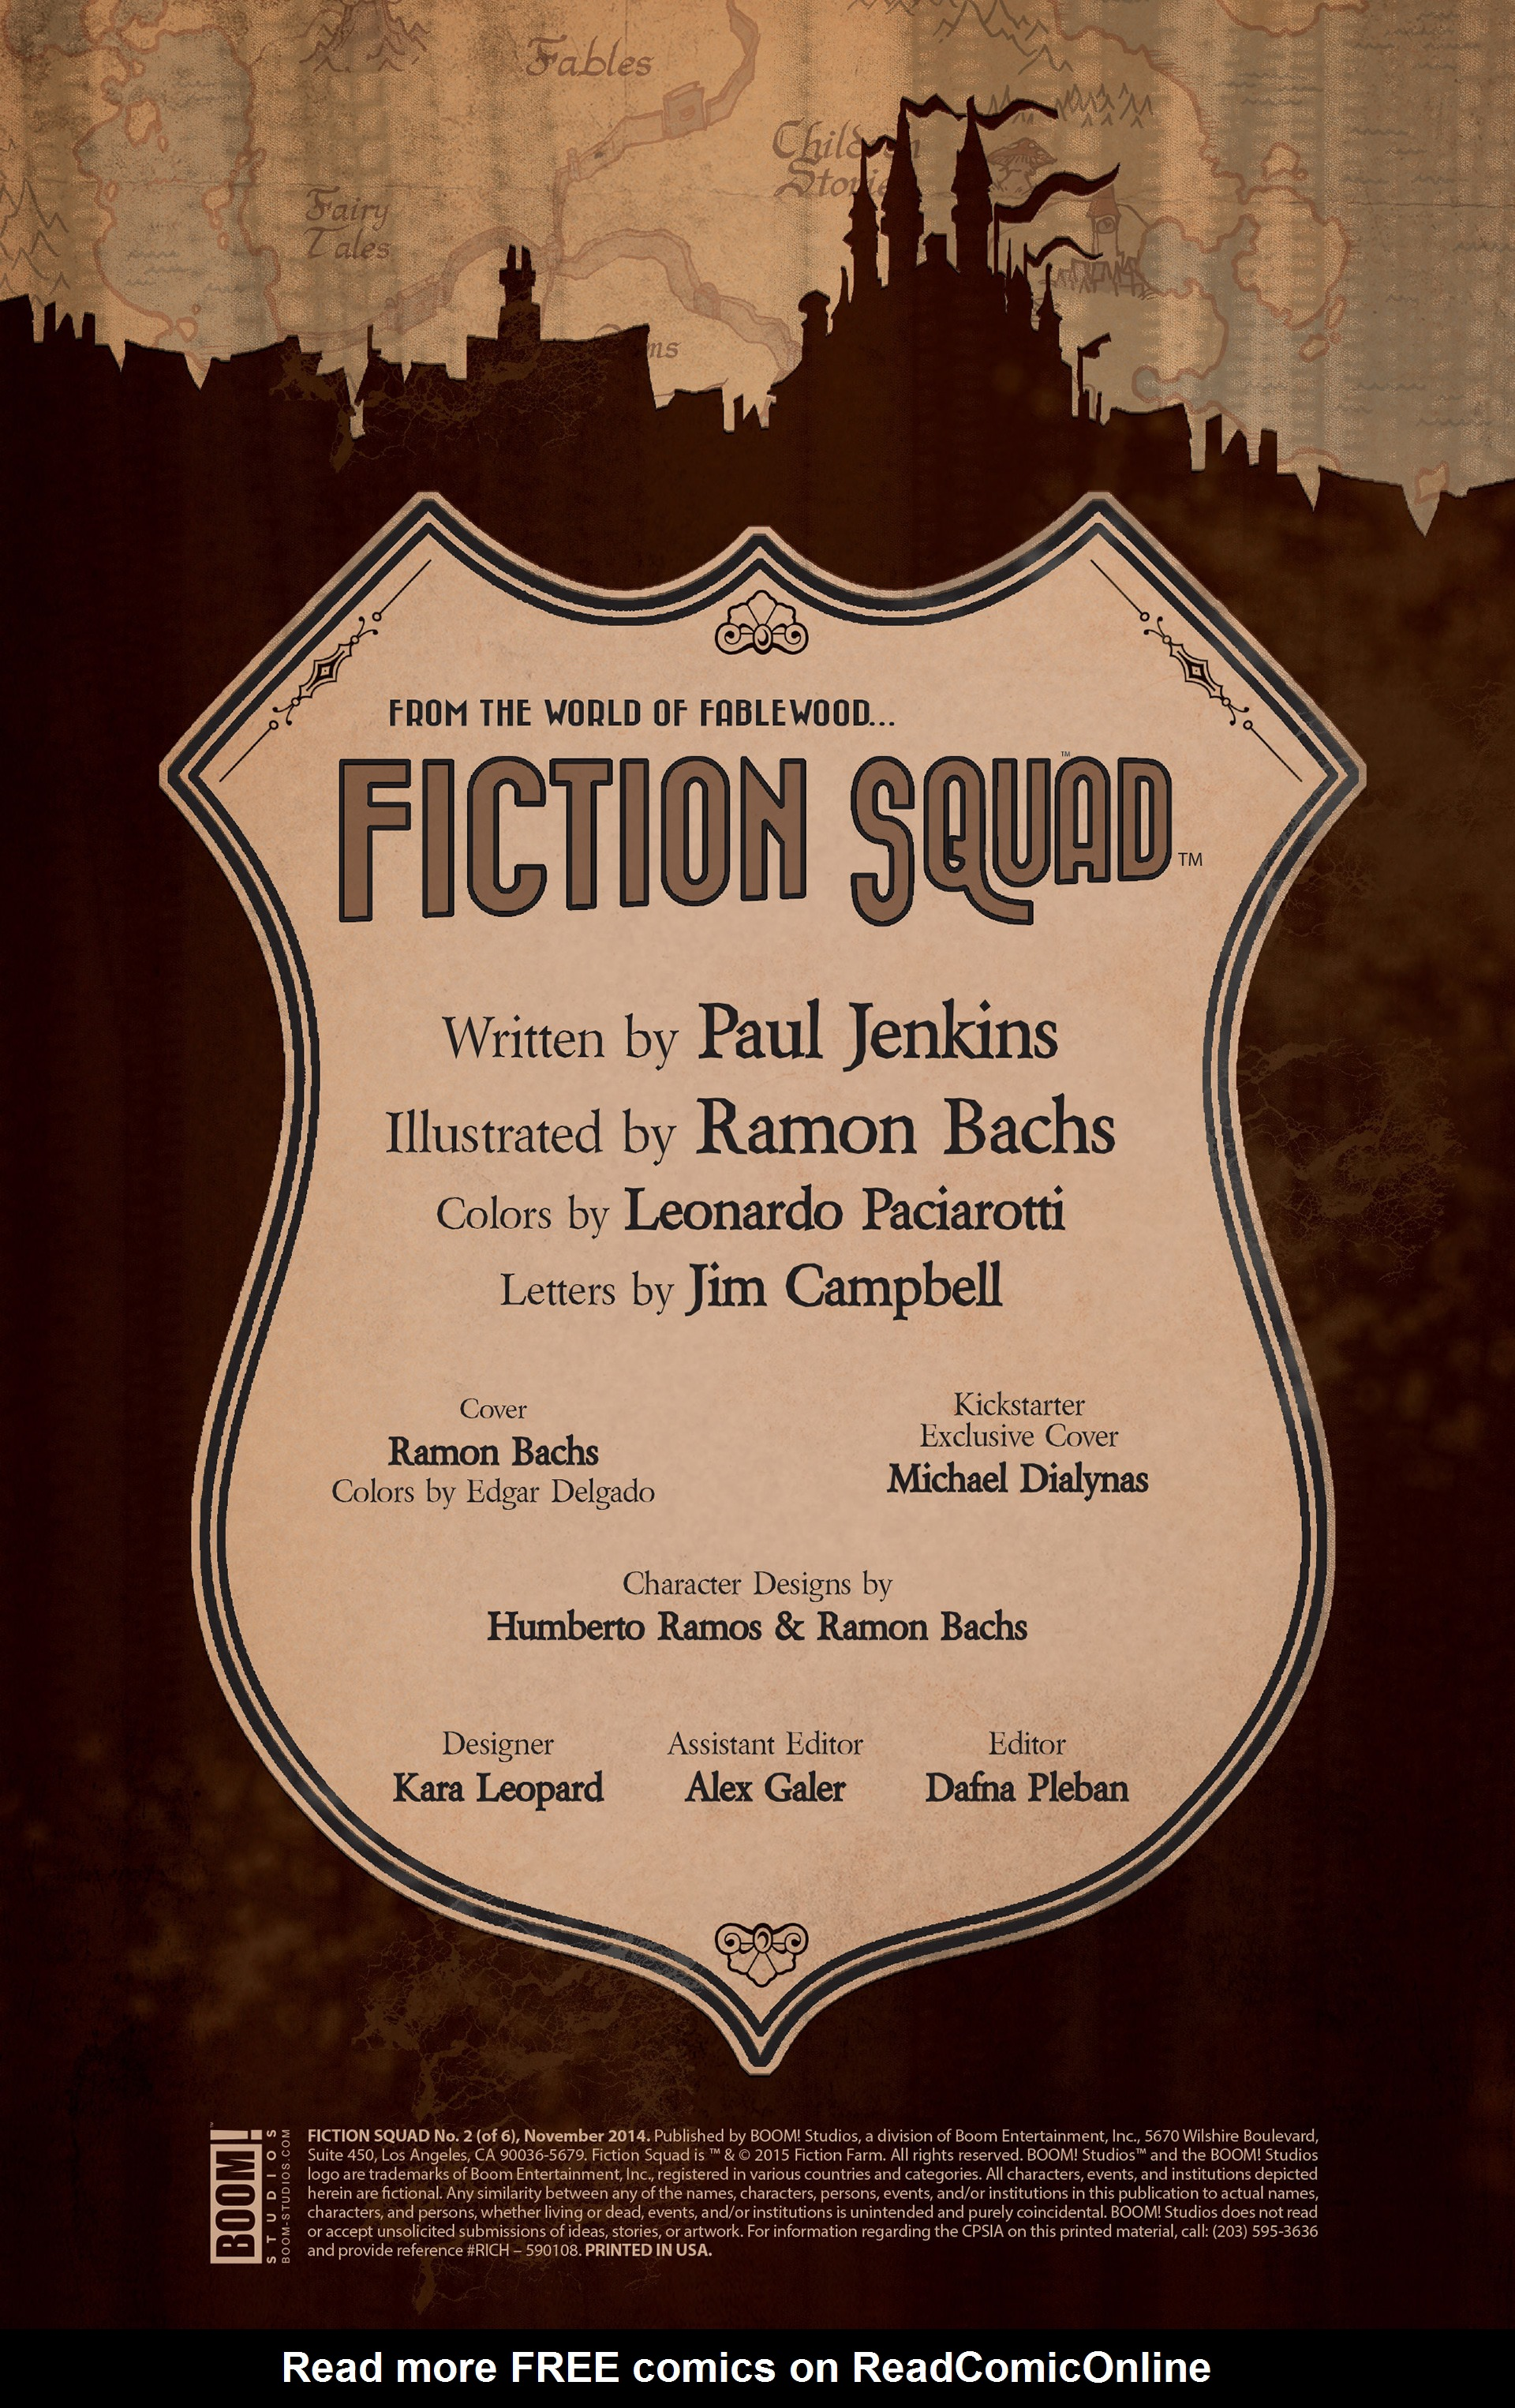 Read online Fiction Squad comic -  Issue #2 - 2